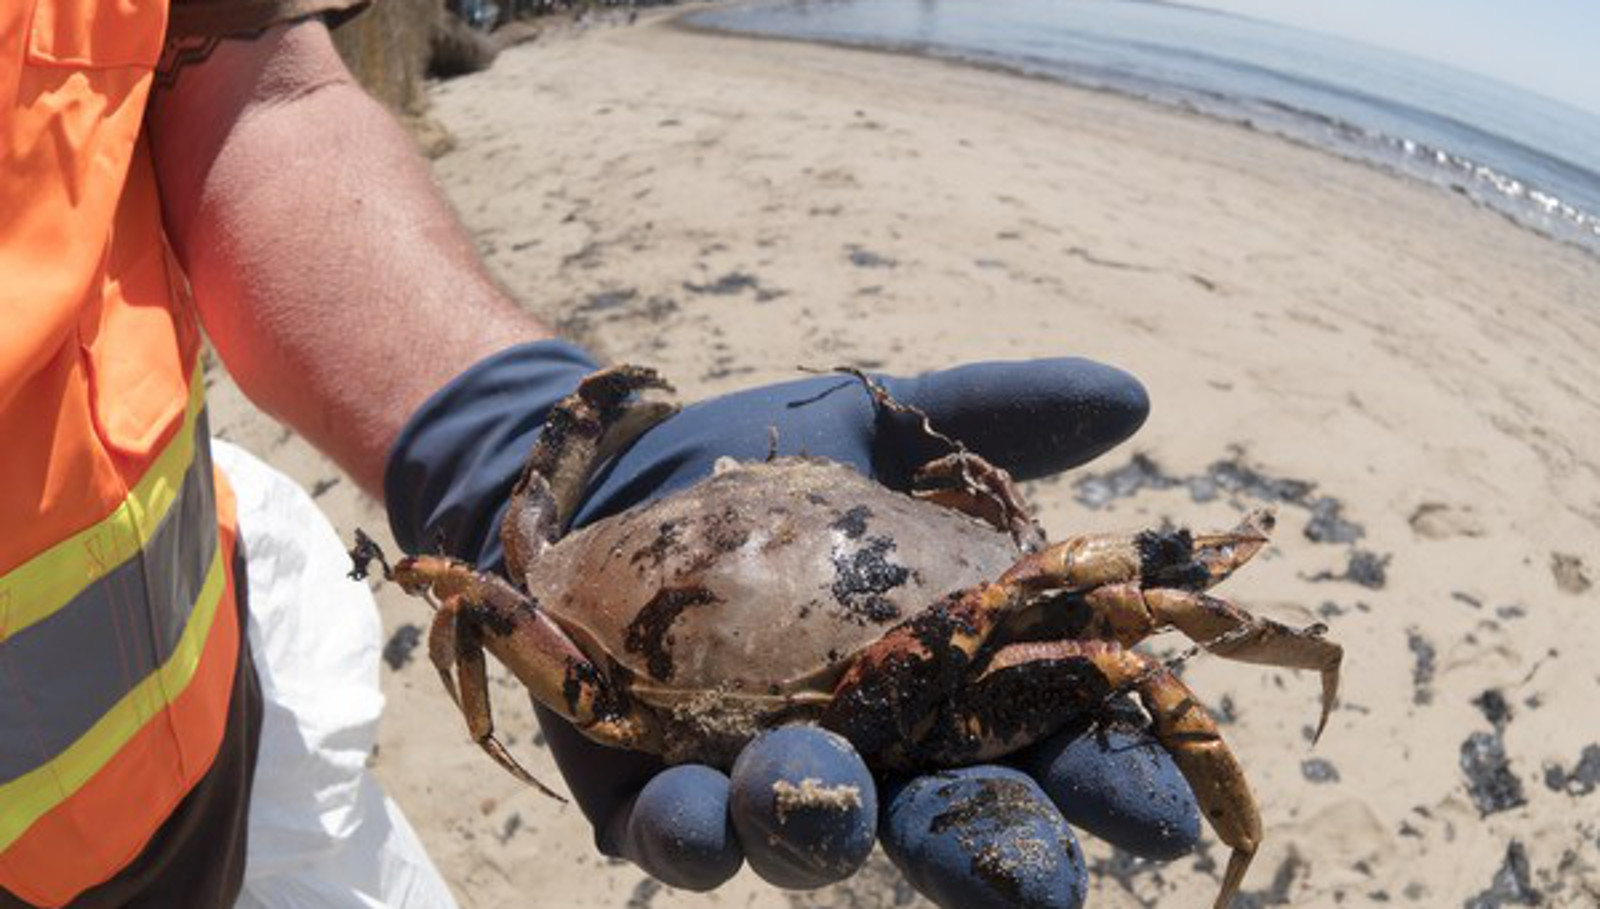 Have We Learned Anything From the Santa Barbara Oil Spill?